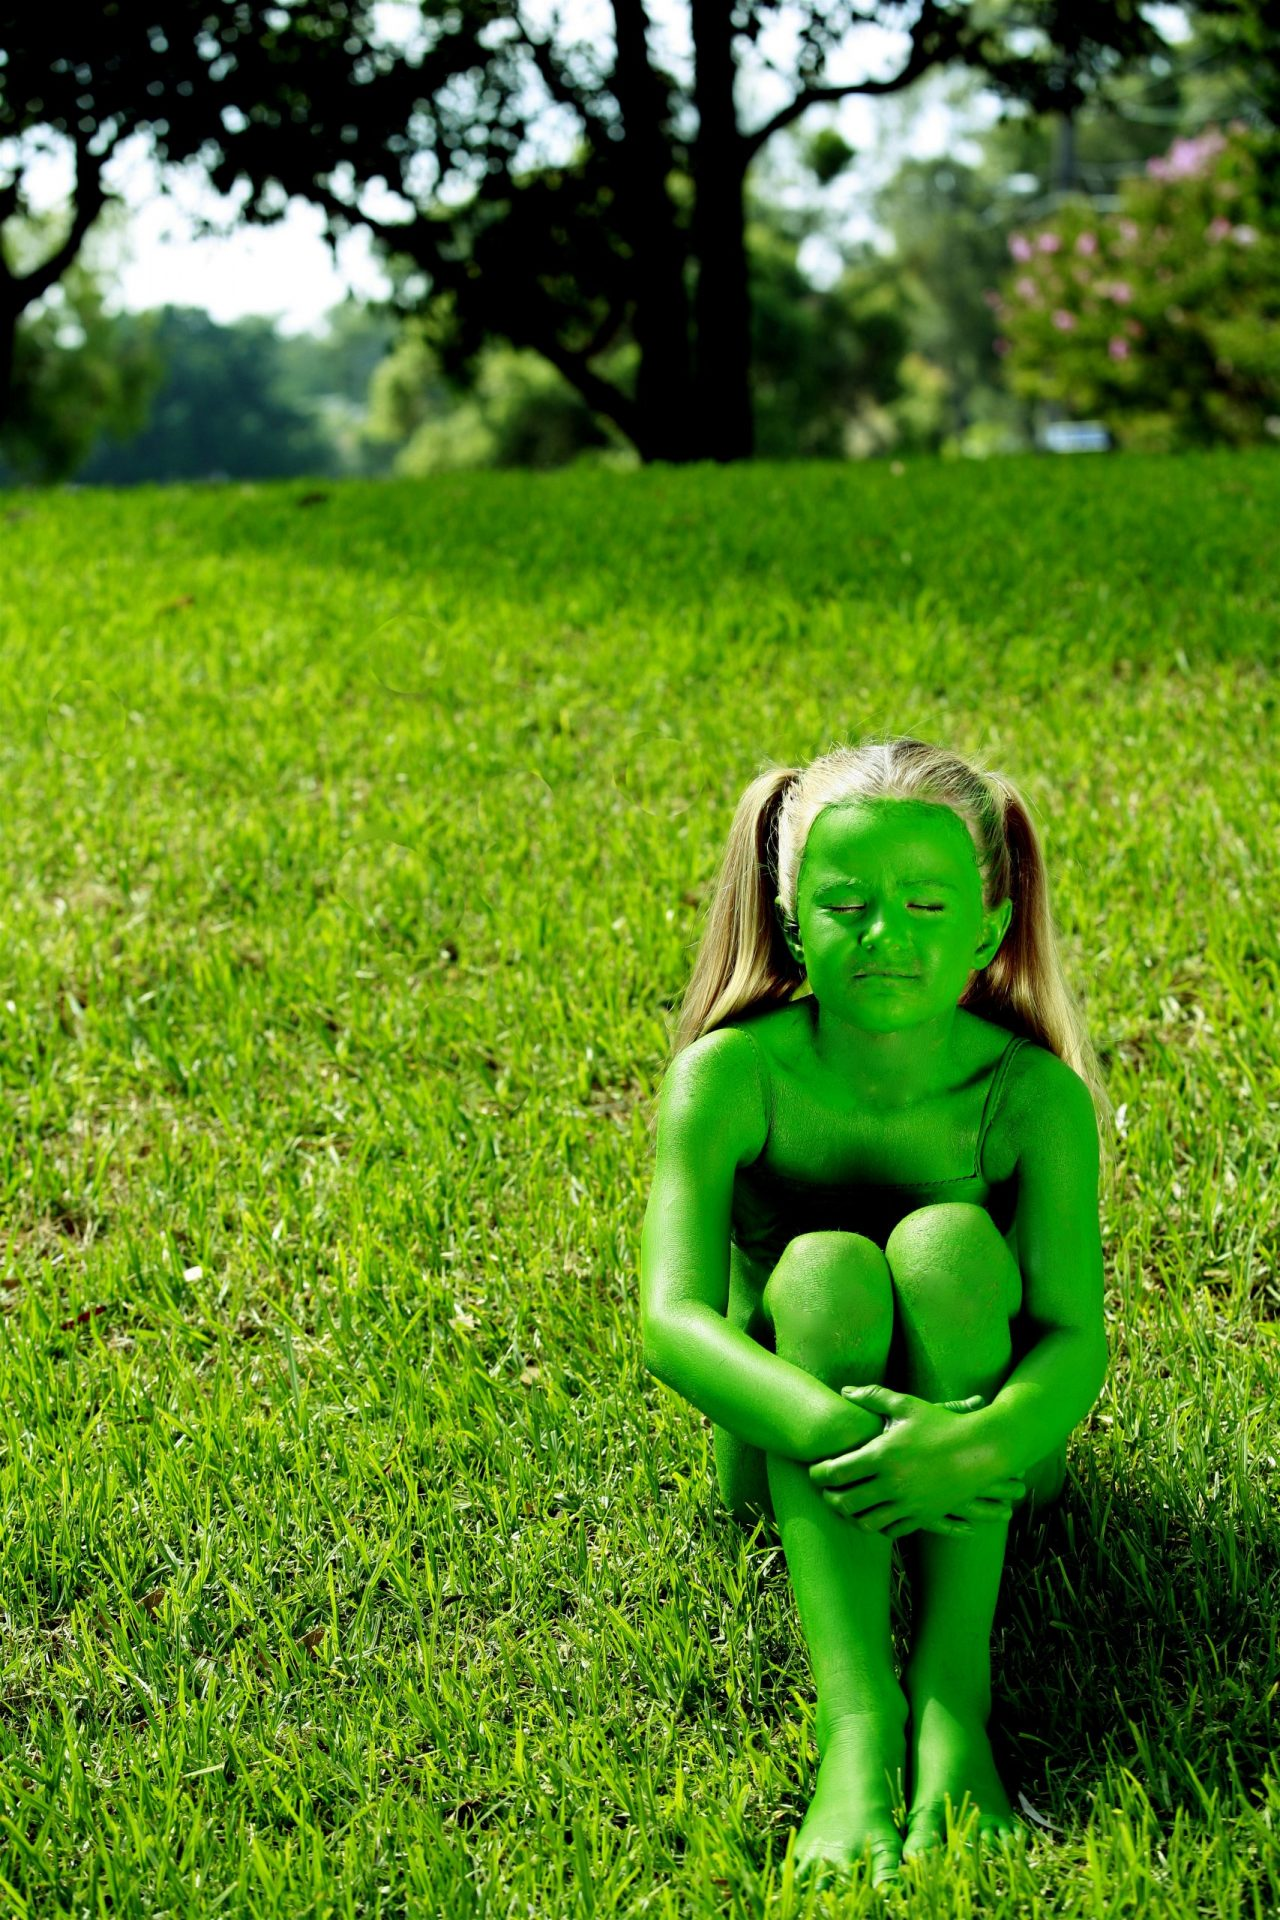 Bodypainted Children - Bodypainting - Photography & Film